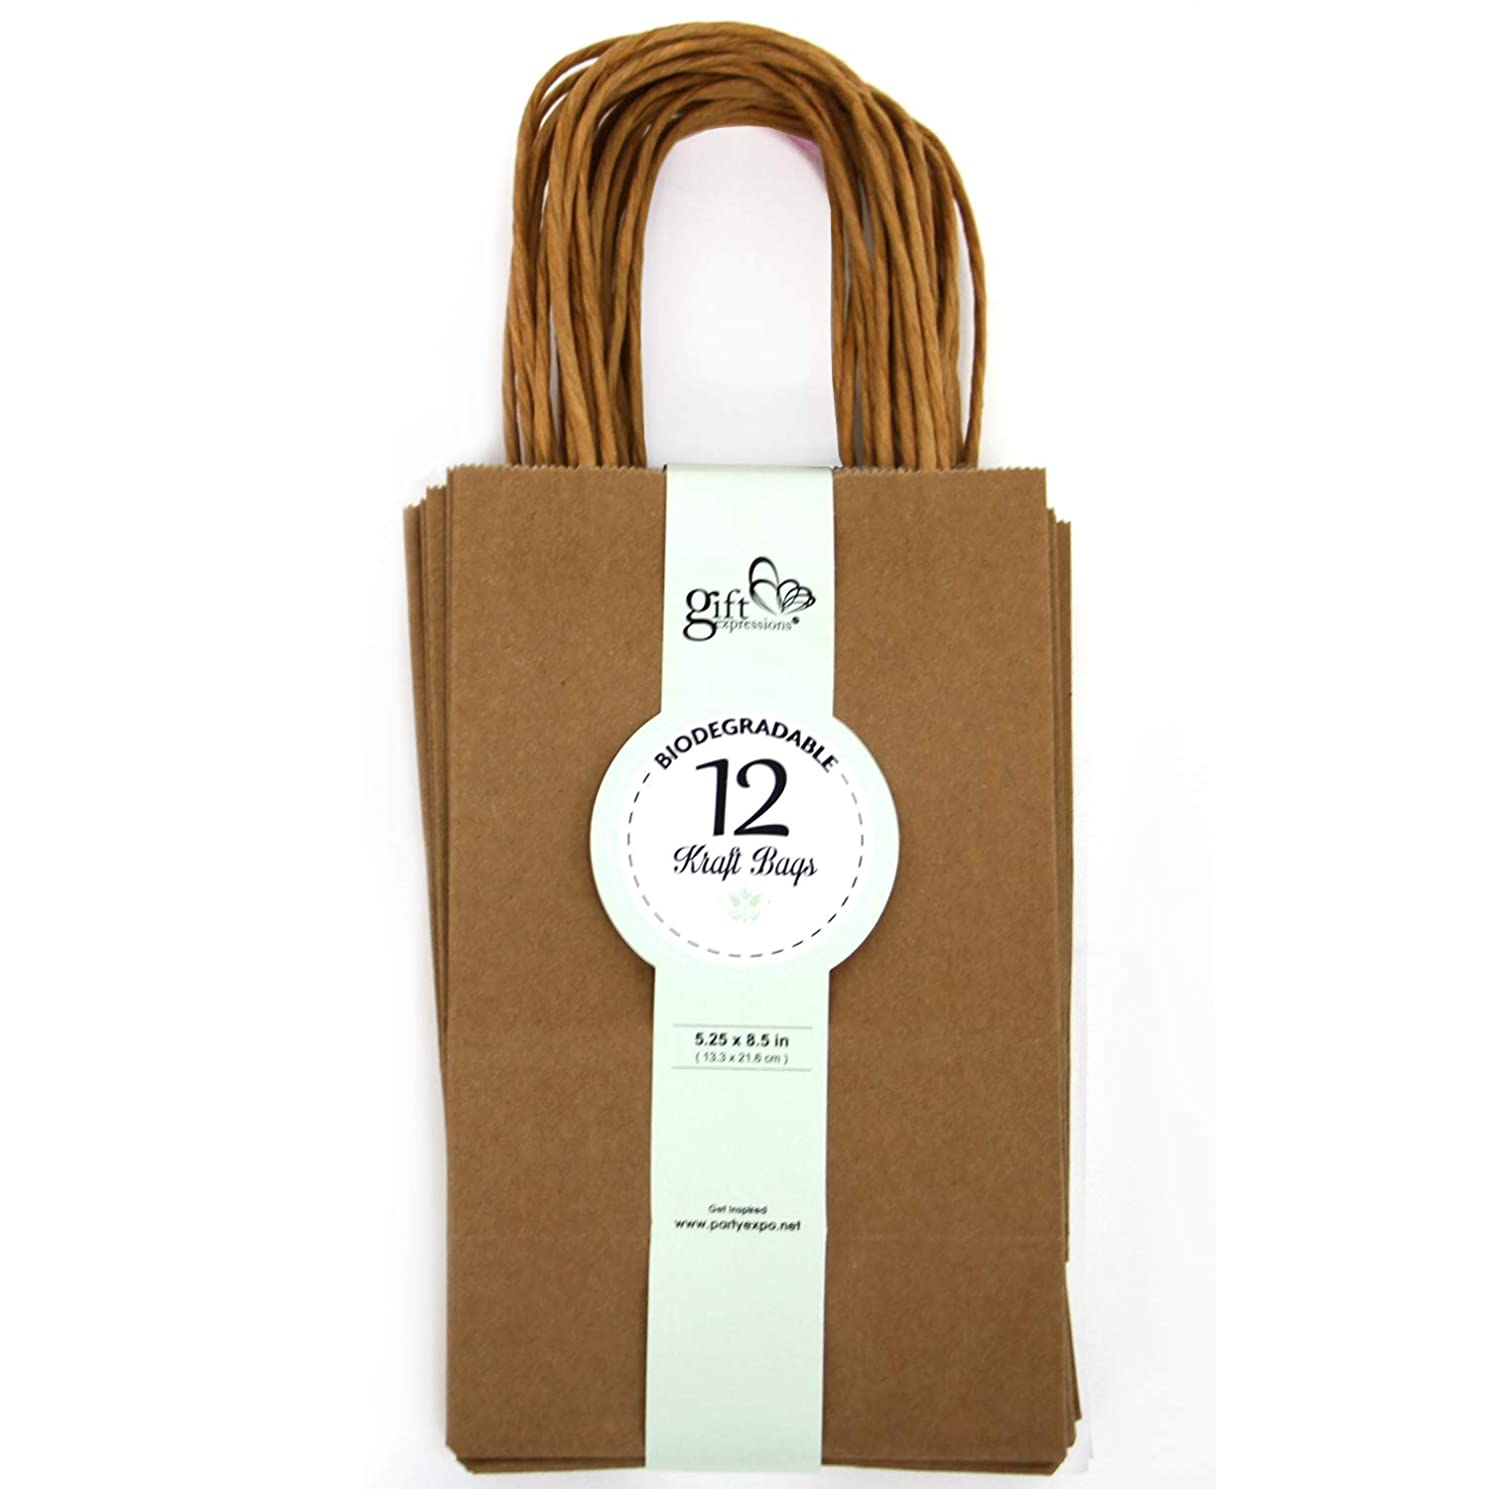 12CT SMALL BROWN BIODEGRADABLE PAPER, PREMIUM QUALITY PAPER (STURDY & THICKER), KRAFT BAG WITH STURDY HANDLE